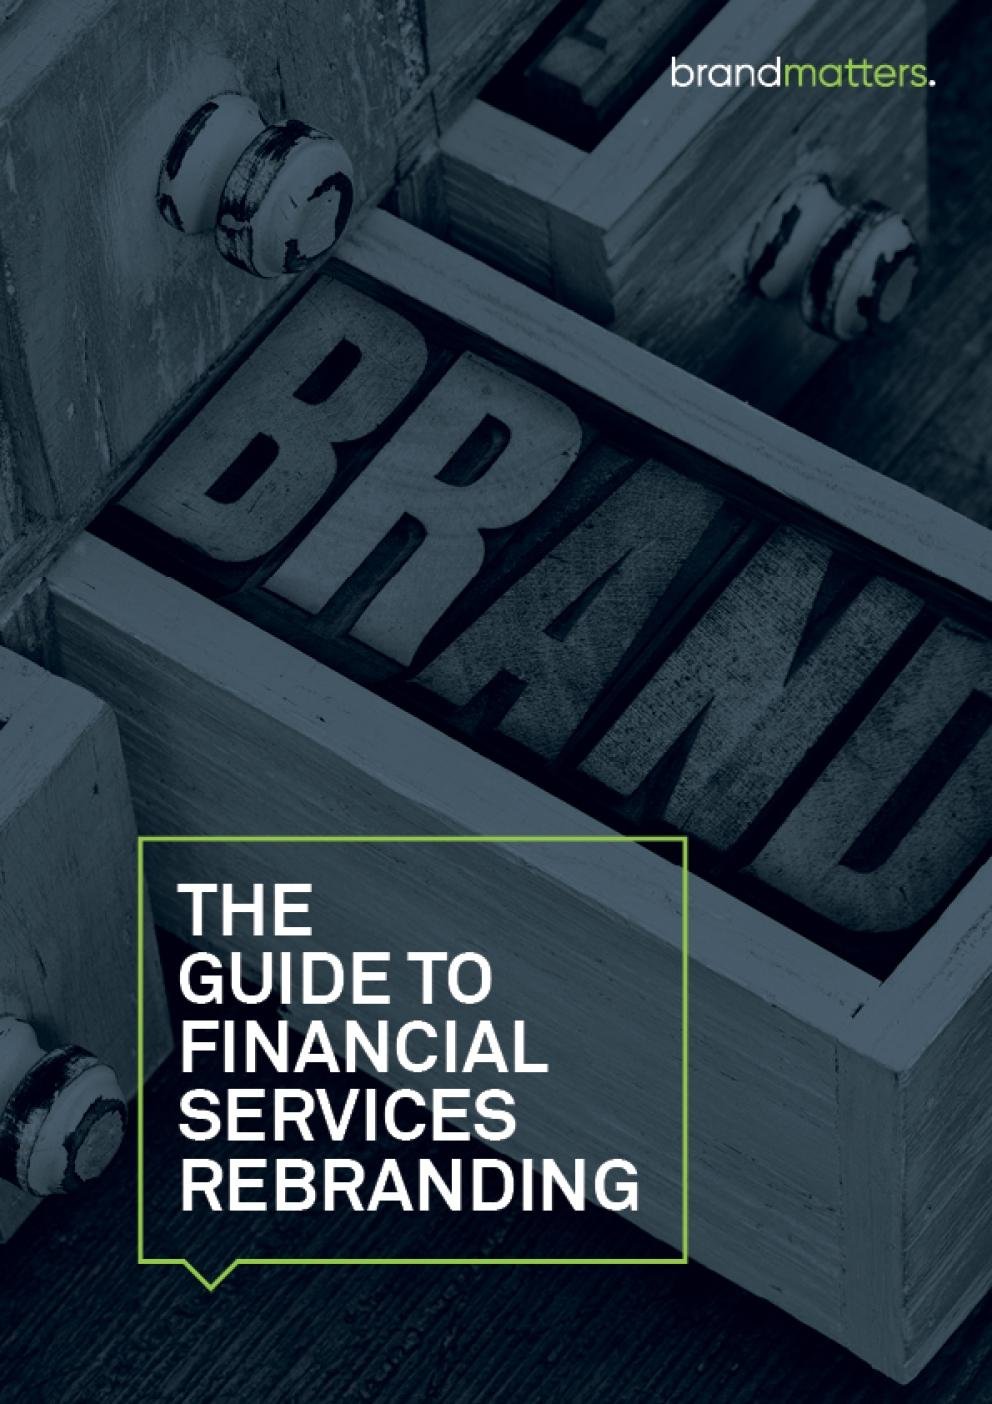 The Guide to Financial Services Rebranding